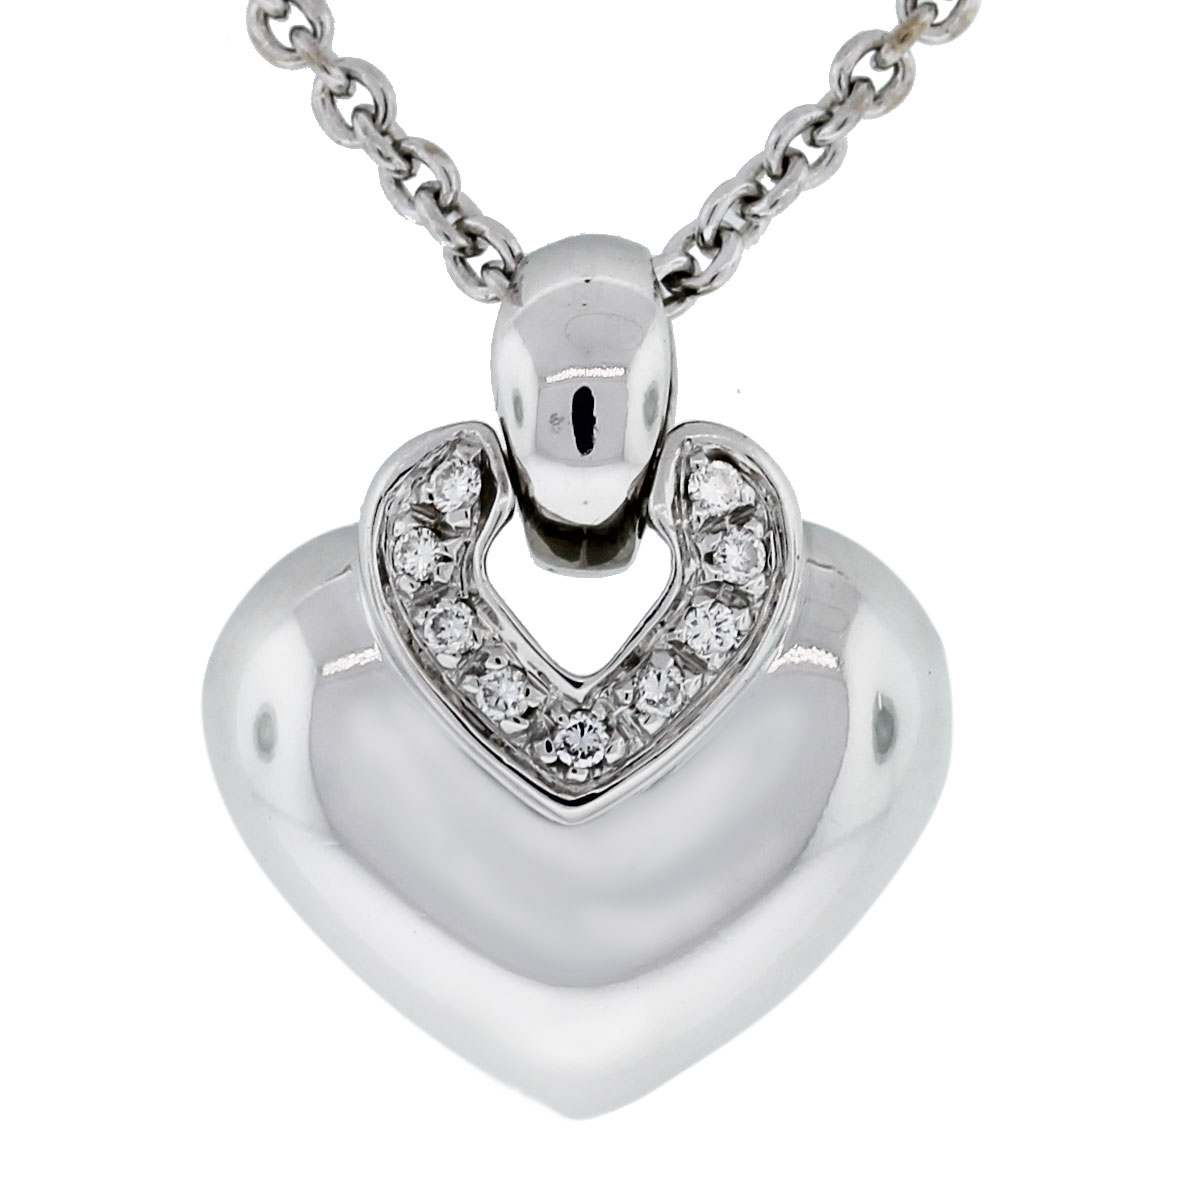 Bulgari 18k White Gold Diamond Heart Pendant w/ Chain